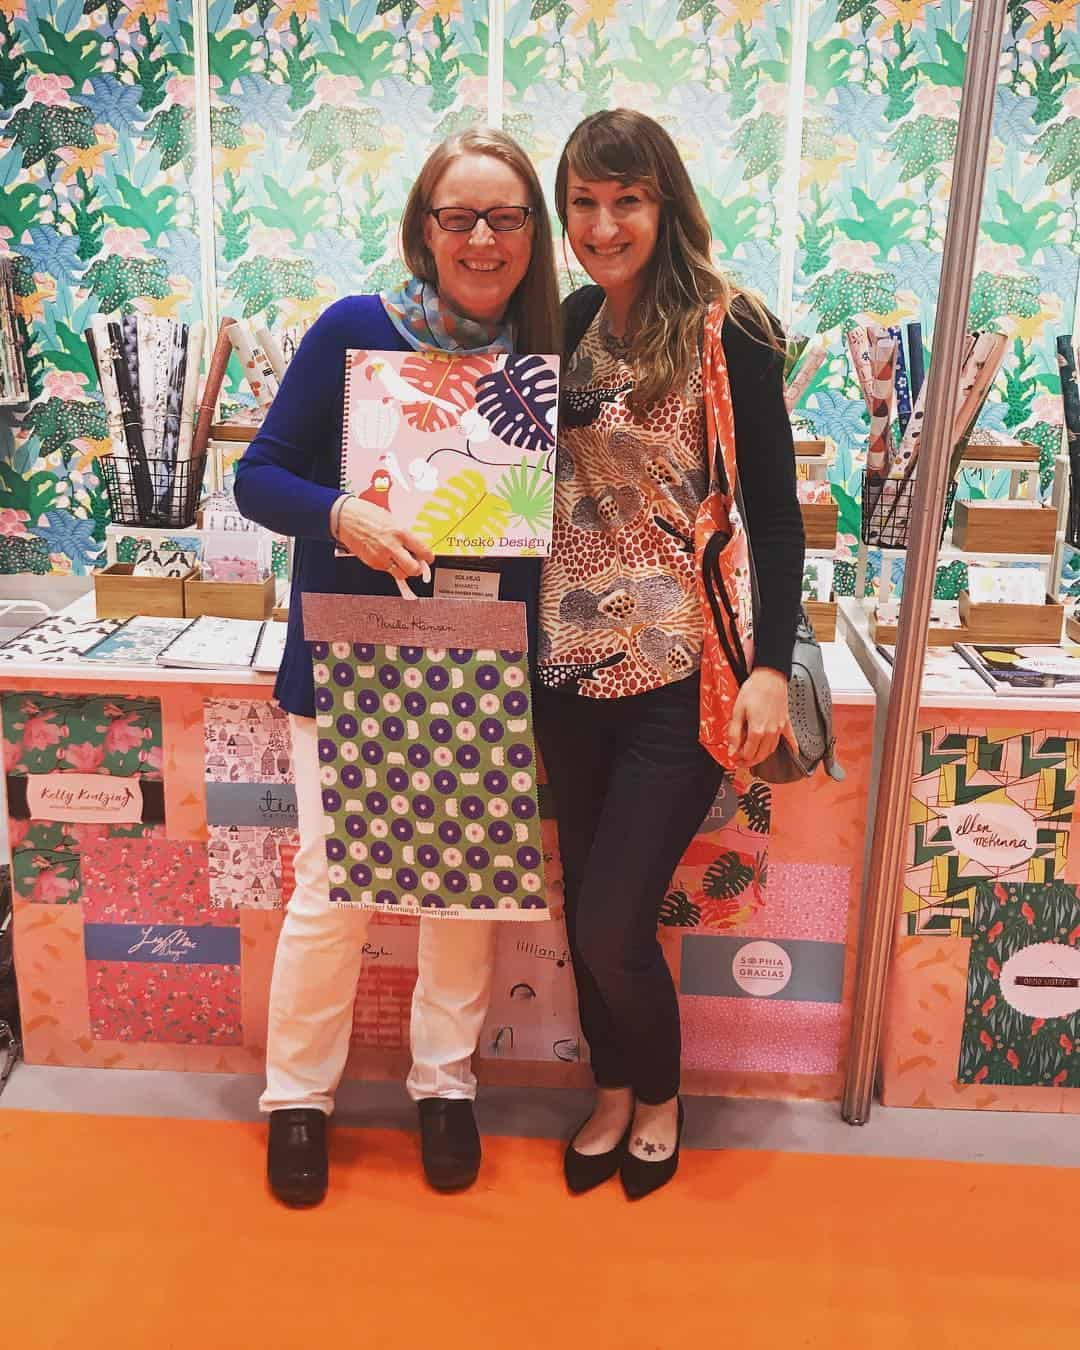 Tara enjoys a stop to meet Spoonflower designer Solvejg Makaretz